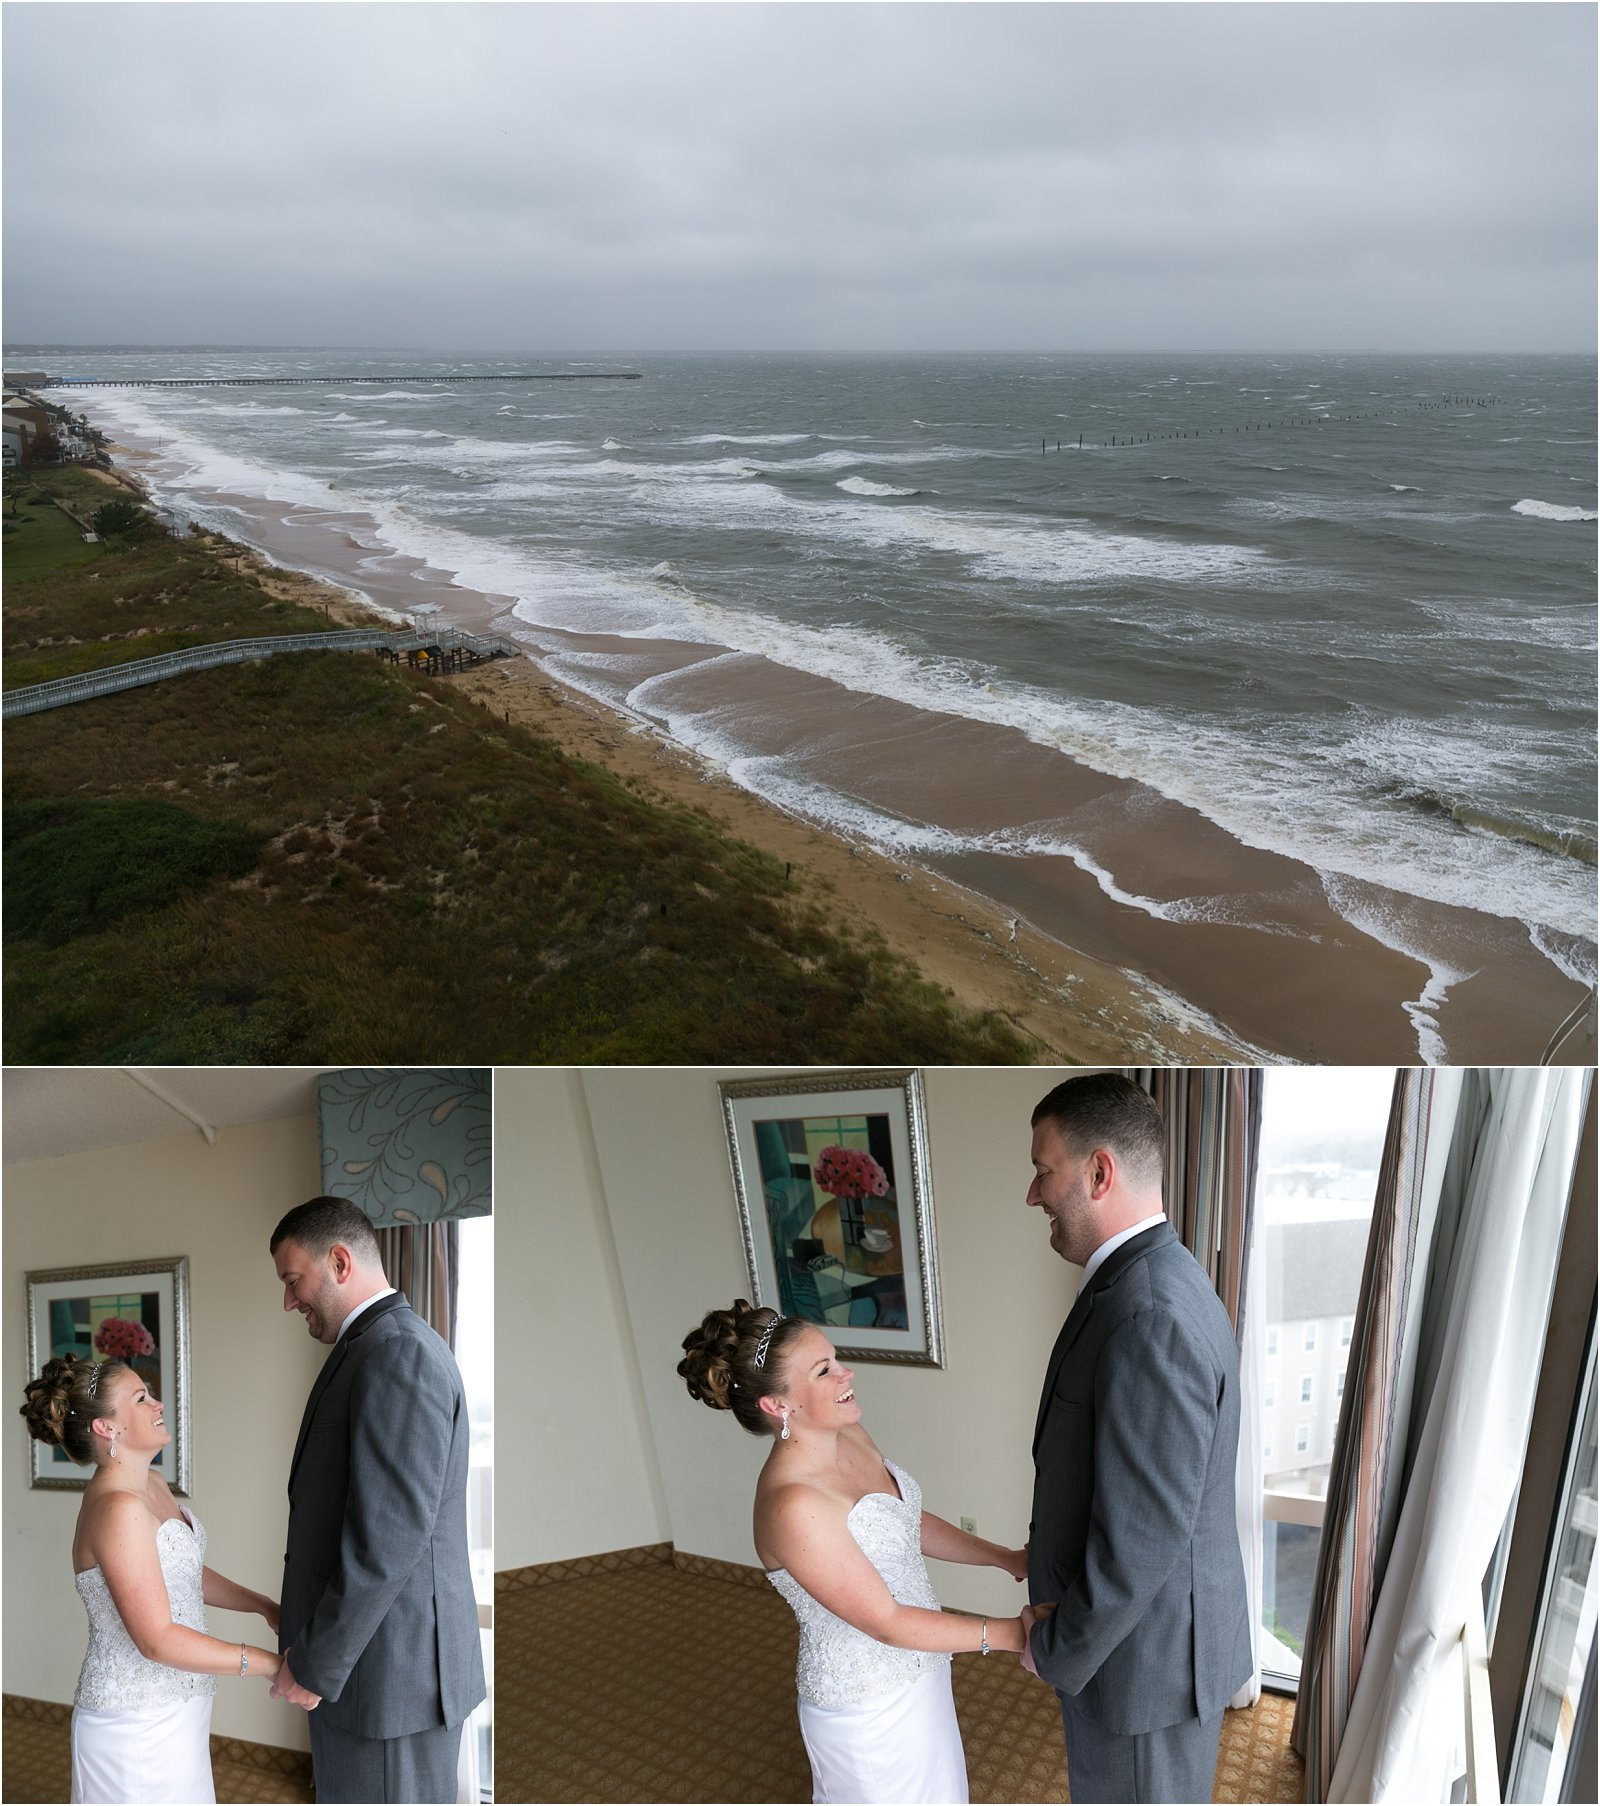 jessica_ryan_photography_lesner_inn_wedding_virginia_beach_rainy_day_0490